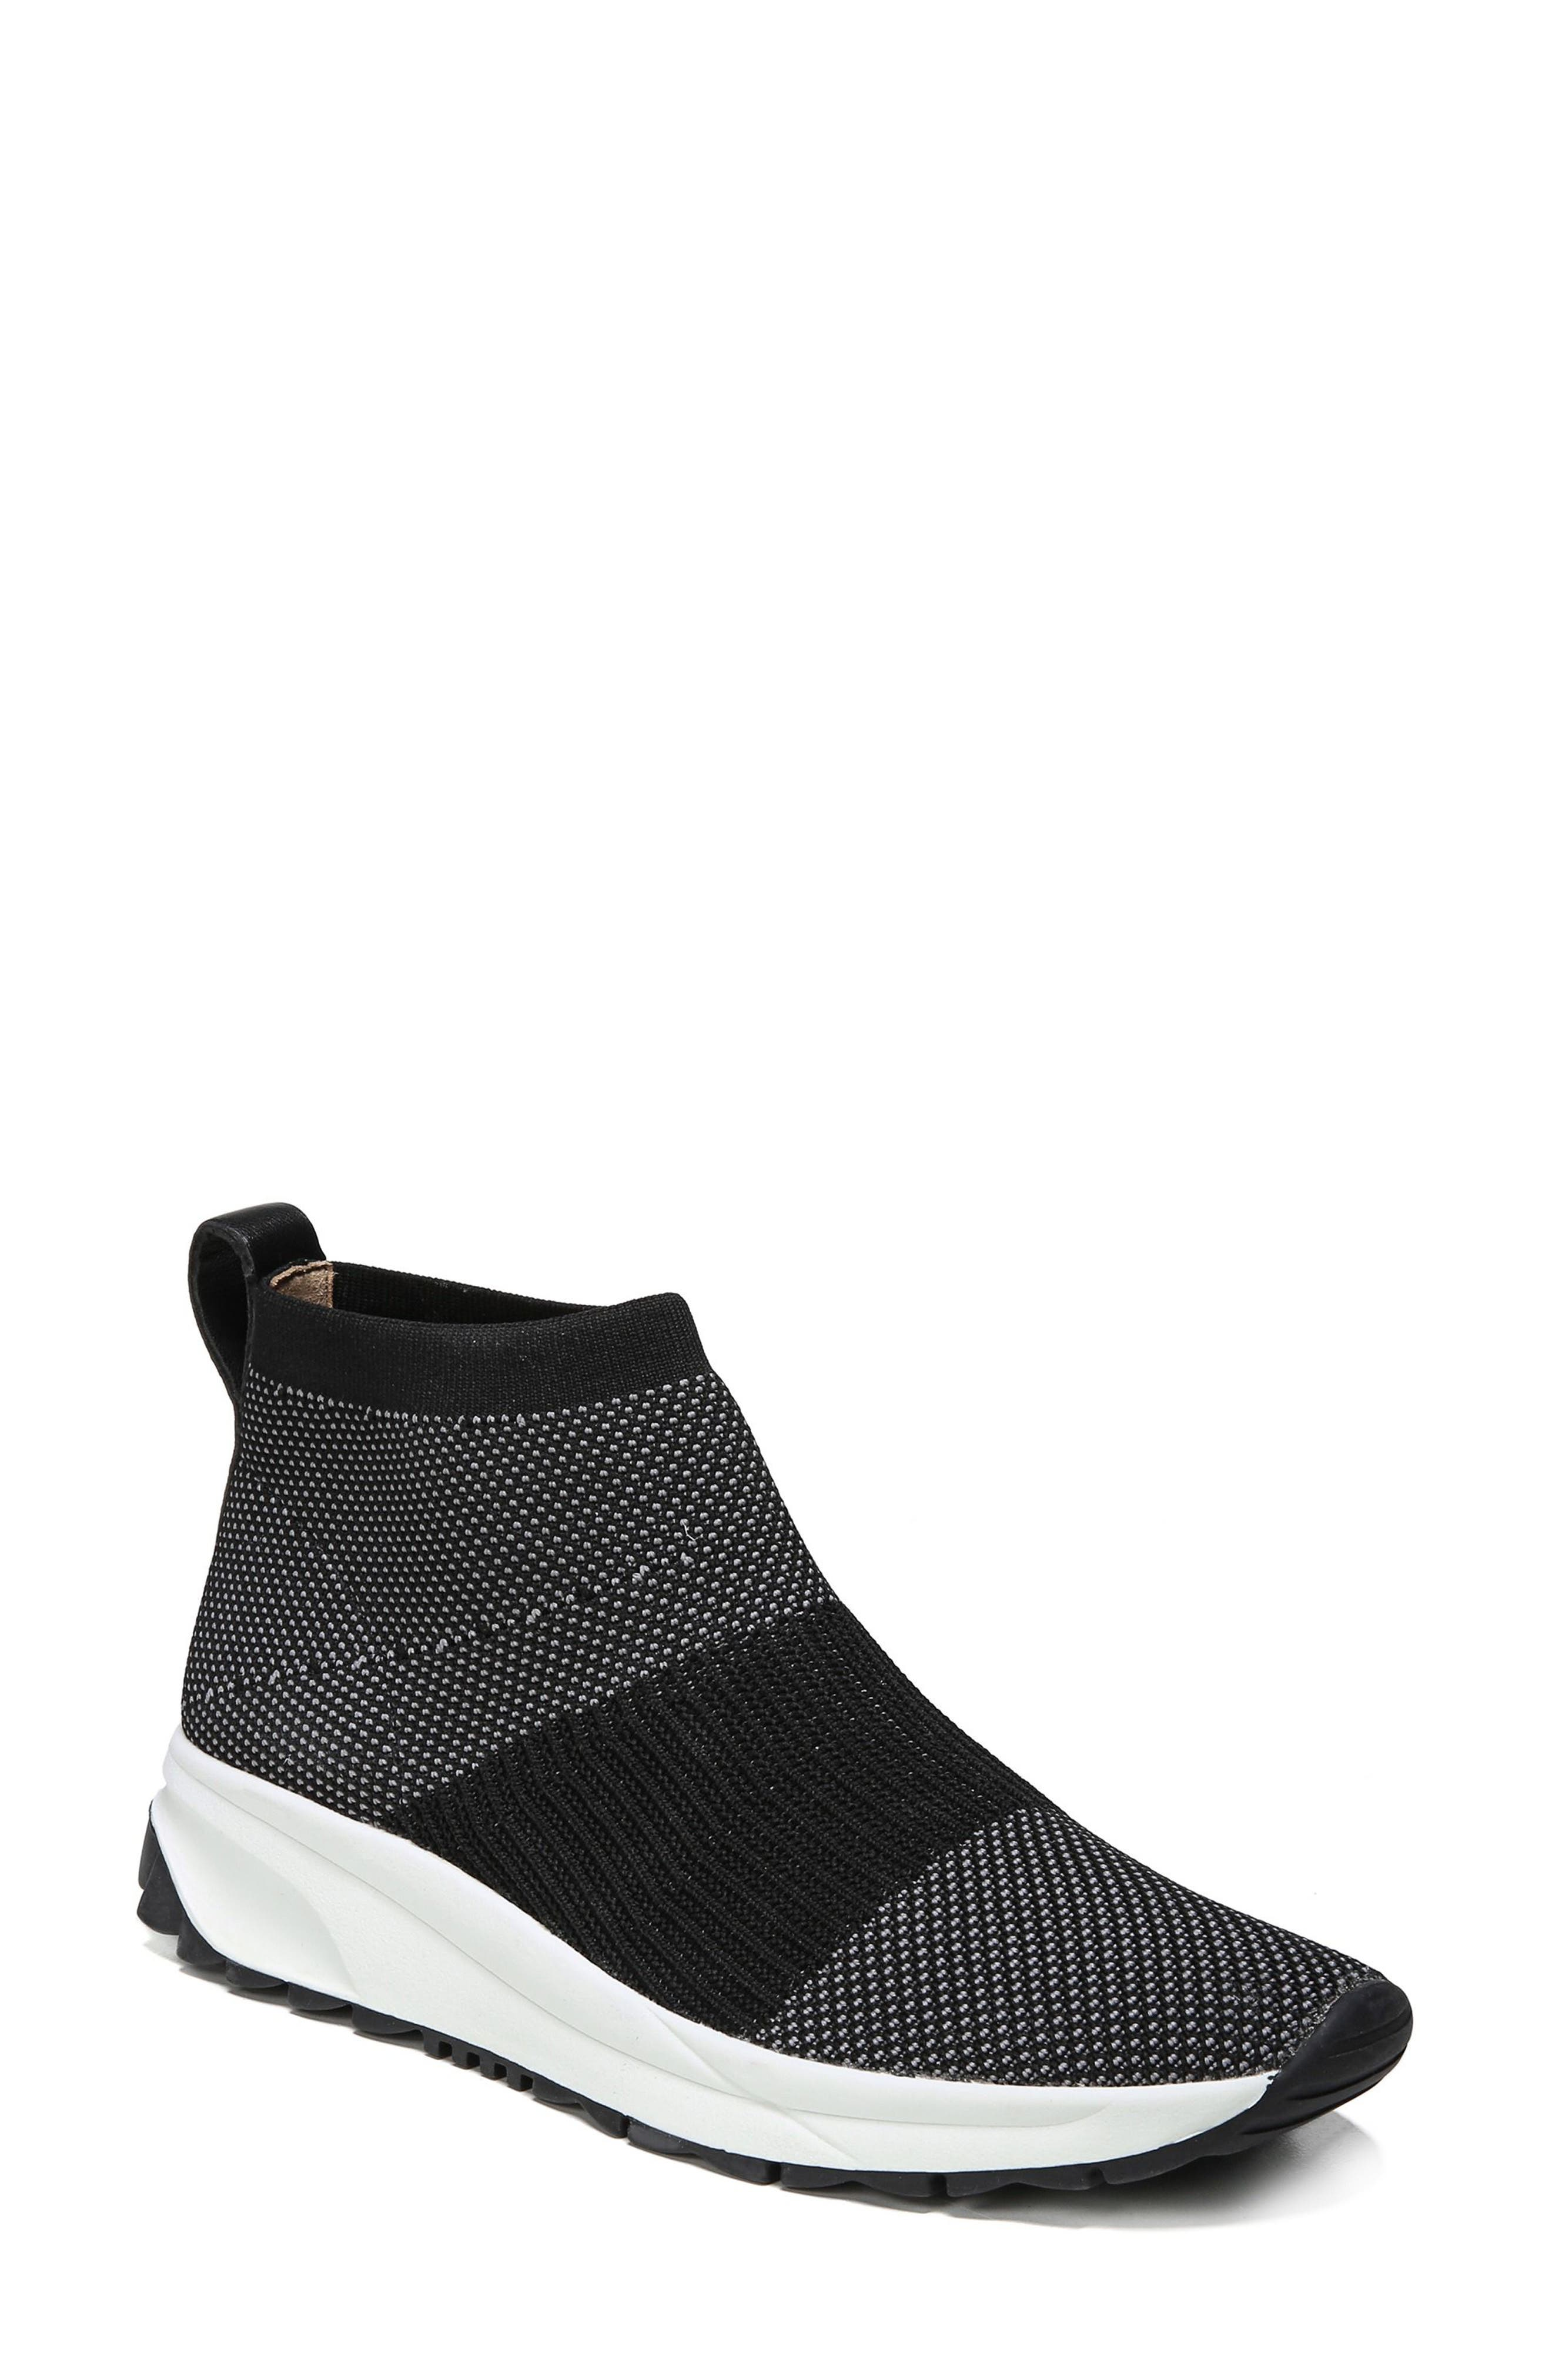 Selena Sneaker Boot,                         Main,                         color, Black Stretch Fabric